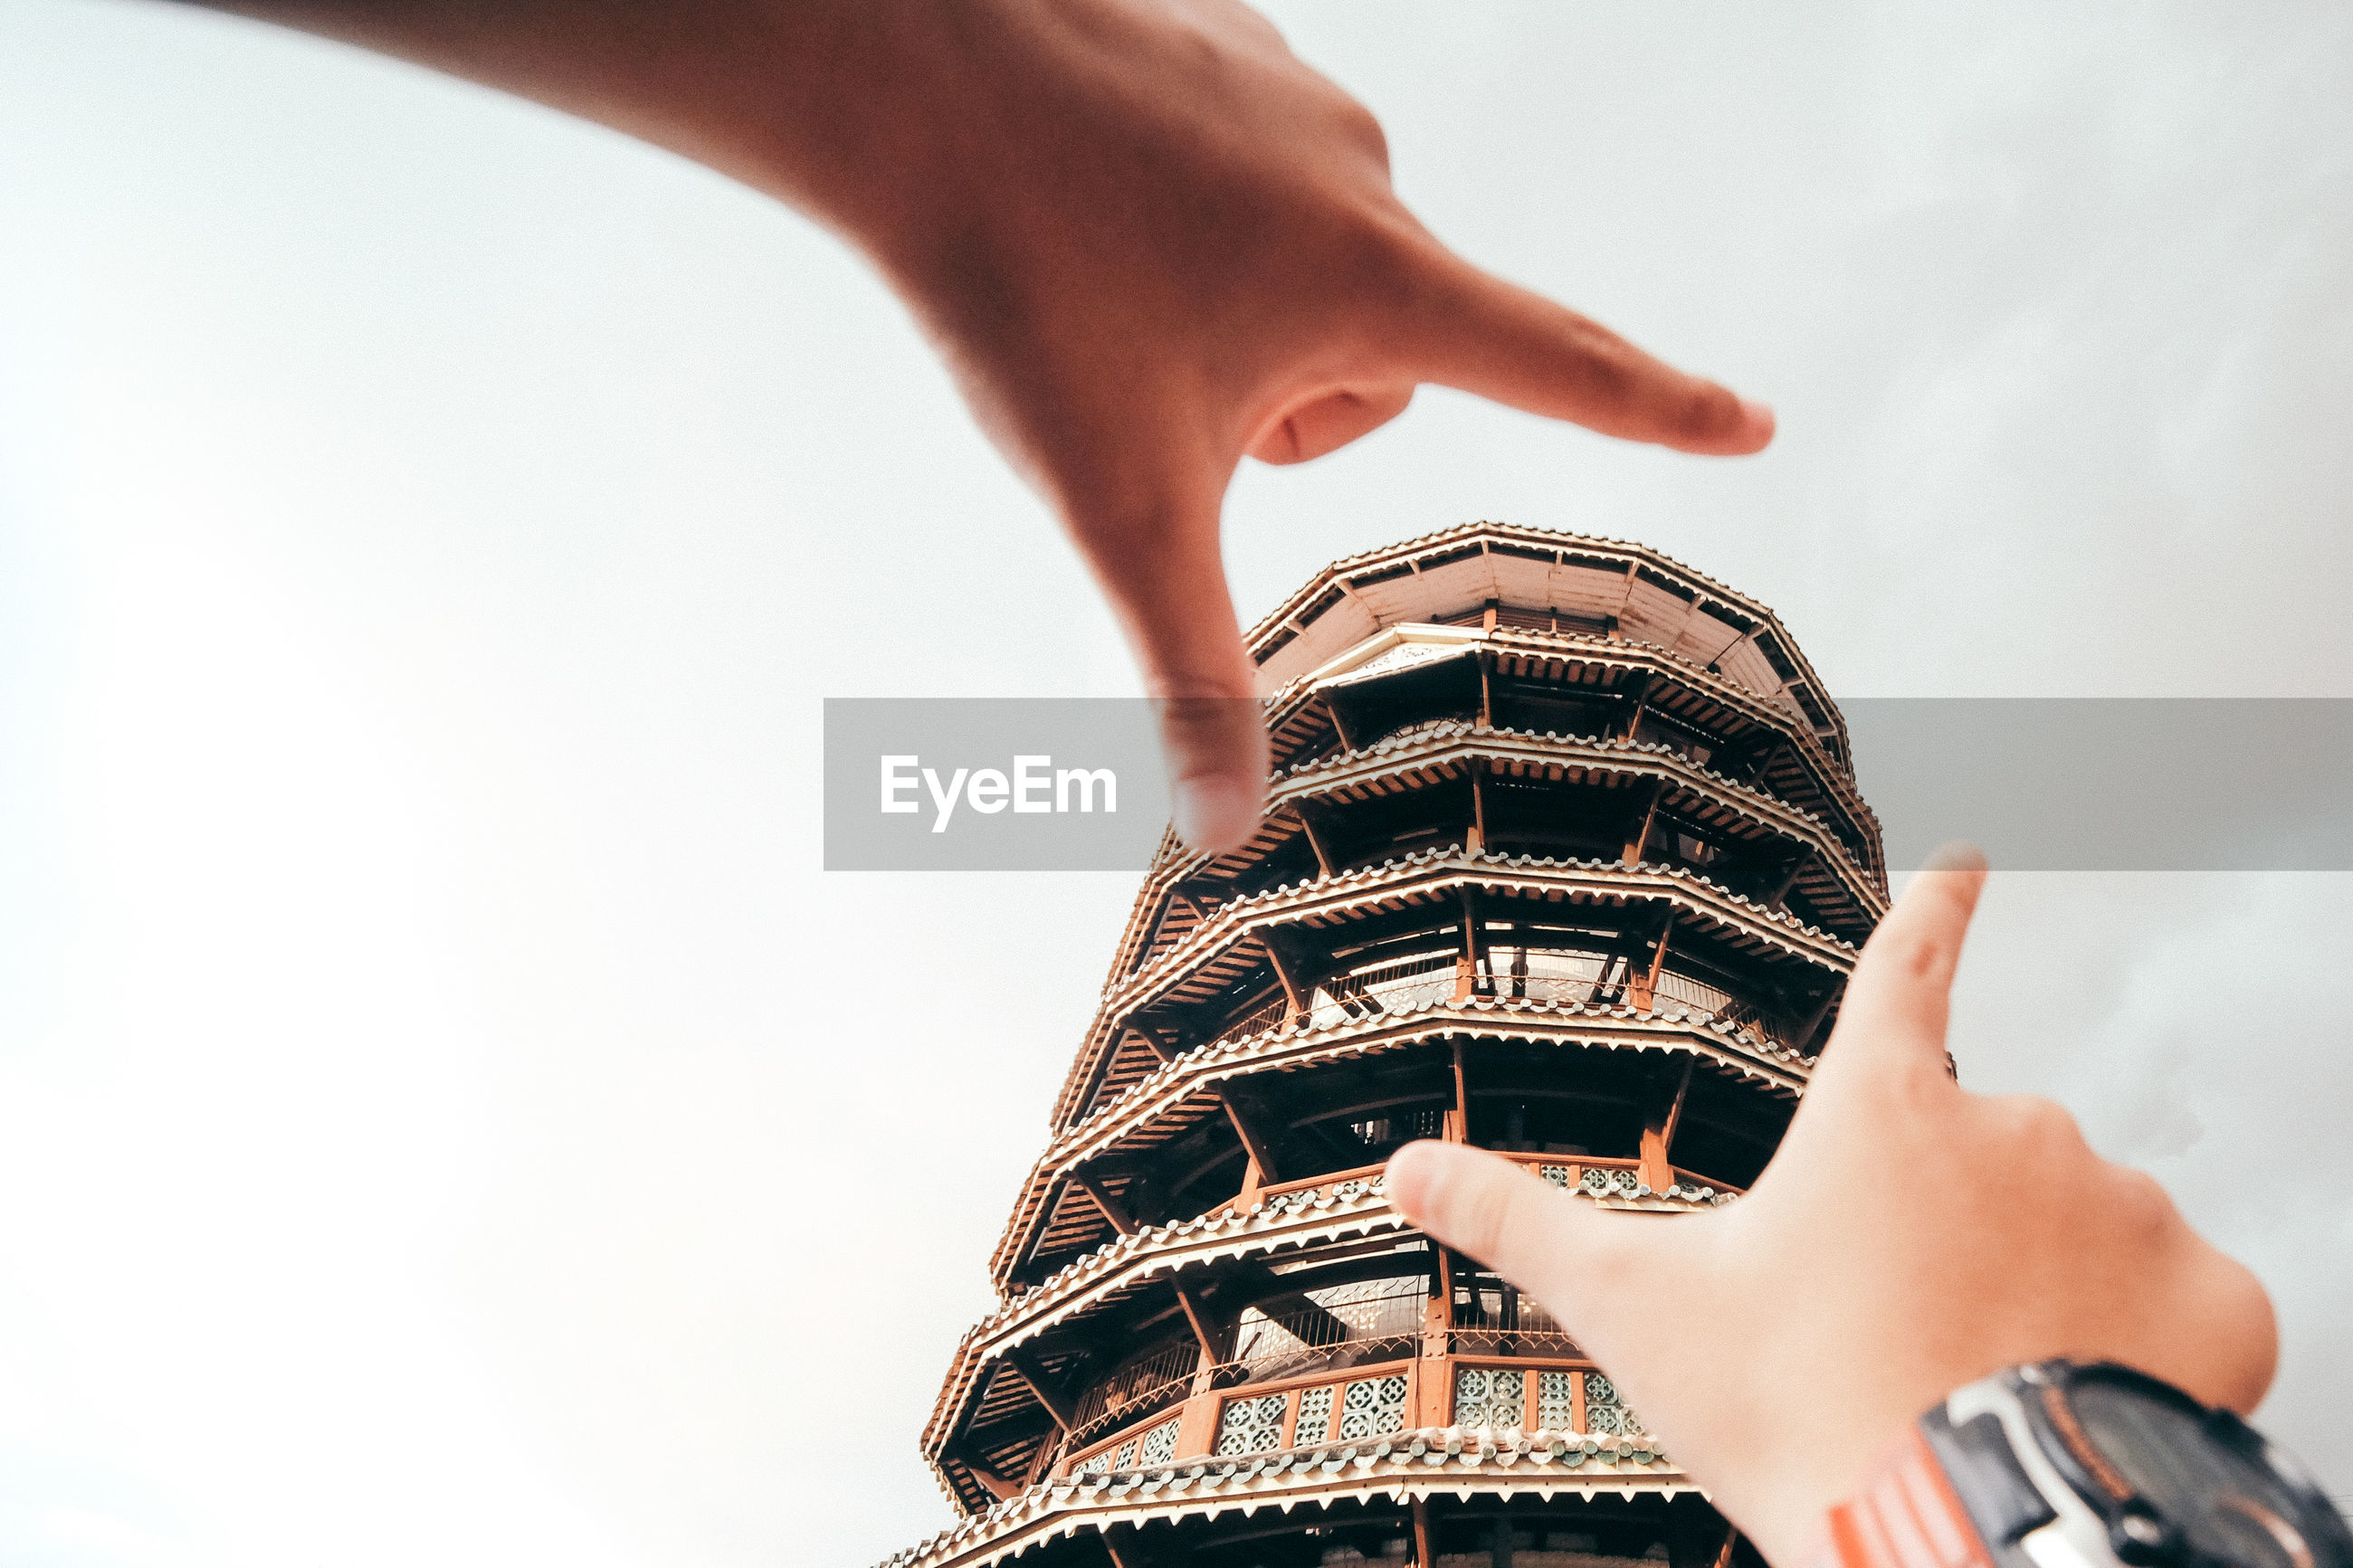 LOW ANGLE VIEW OF HAND HOLDING BUILDING